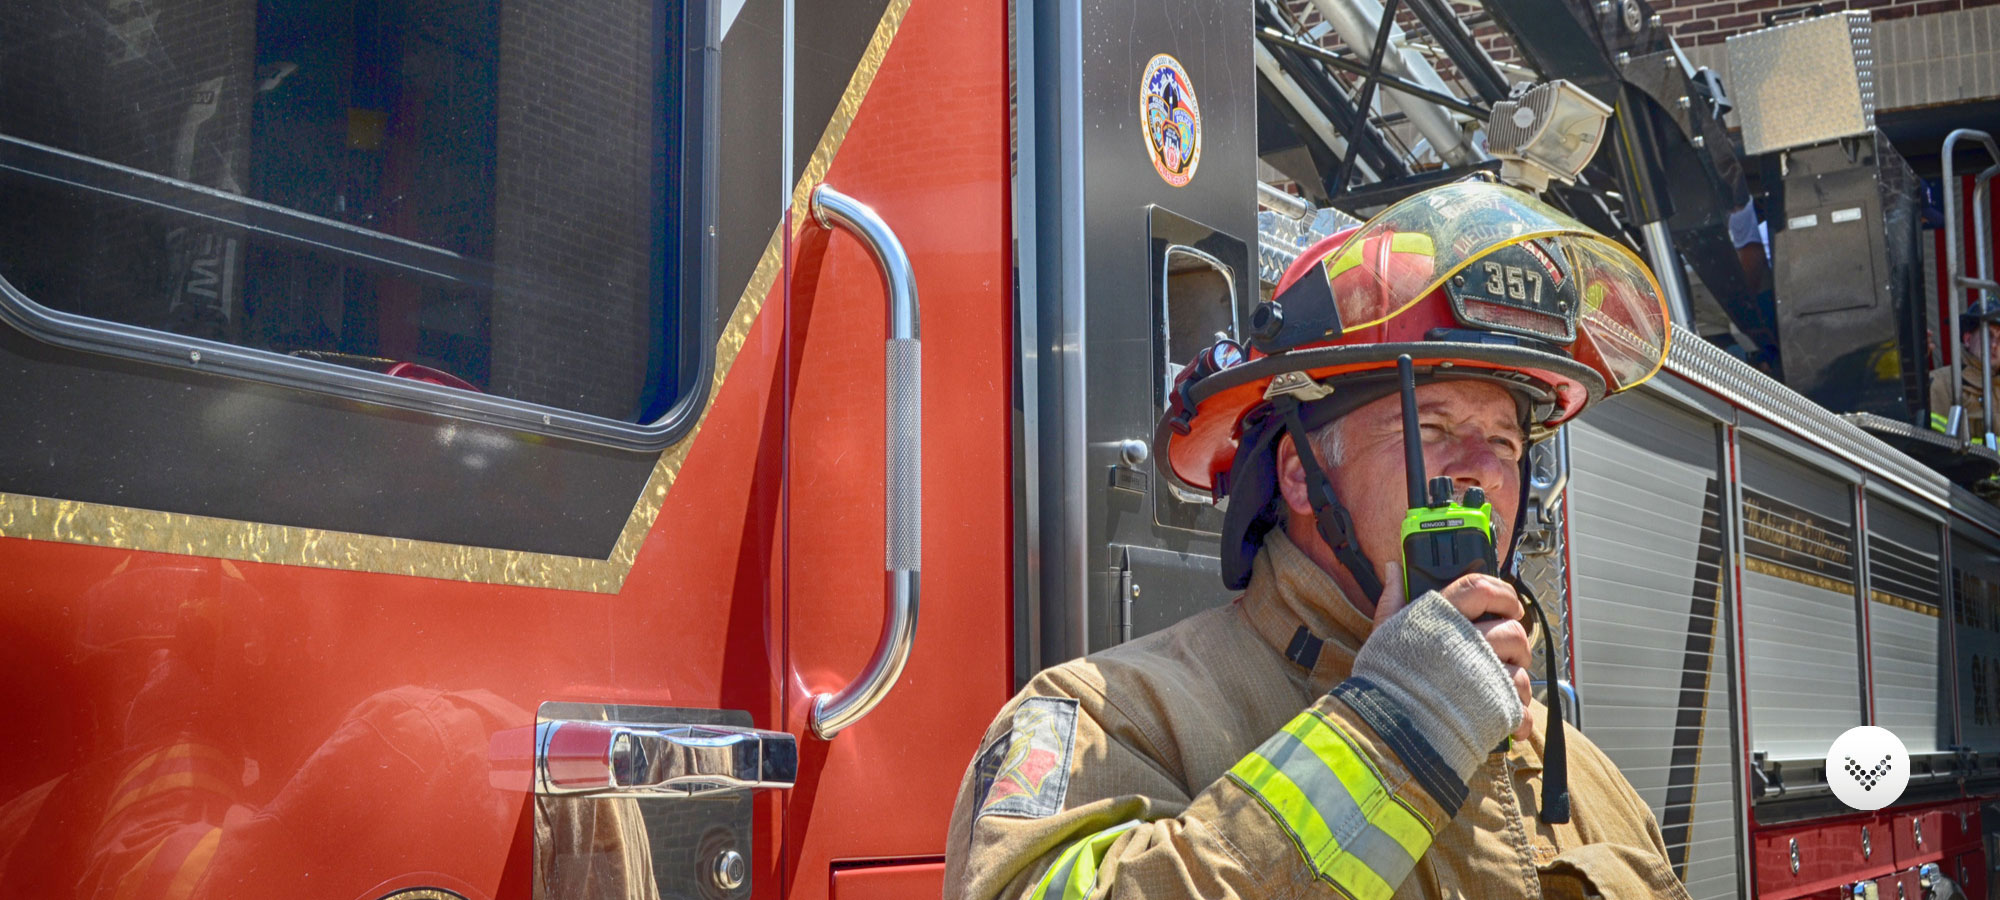 Fire fighter using a high visibility Kenwood two way radio while standing in front of a fire truck.